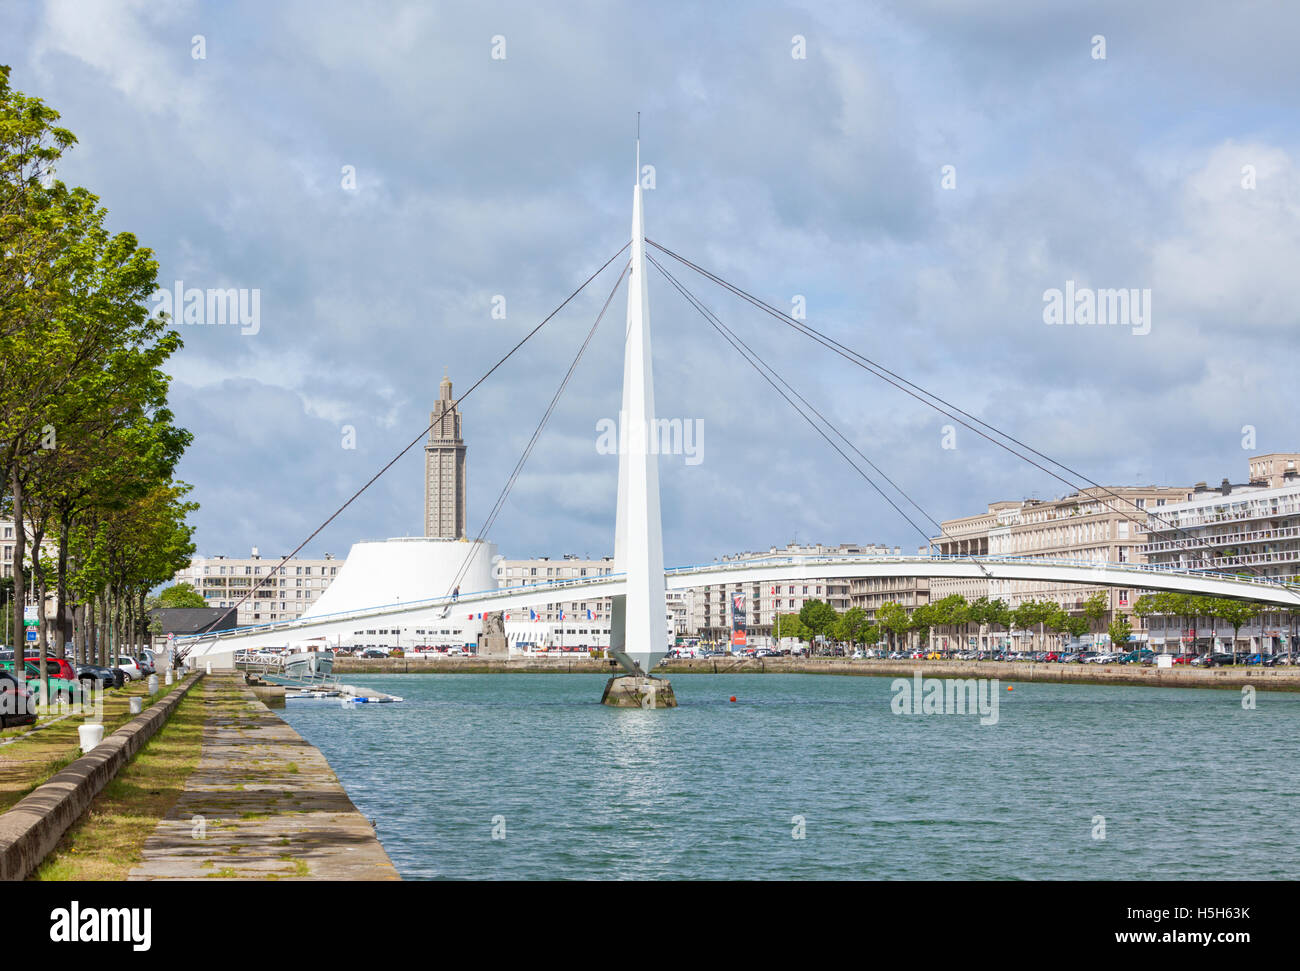 Bassin du Commerce at the centre of Le Havre, France - Stock Image